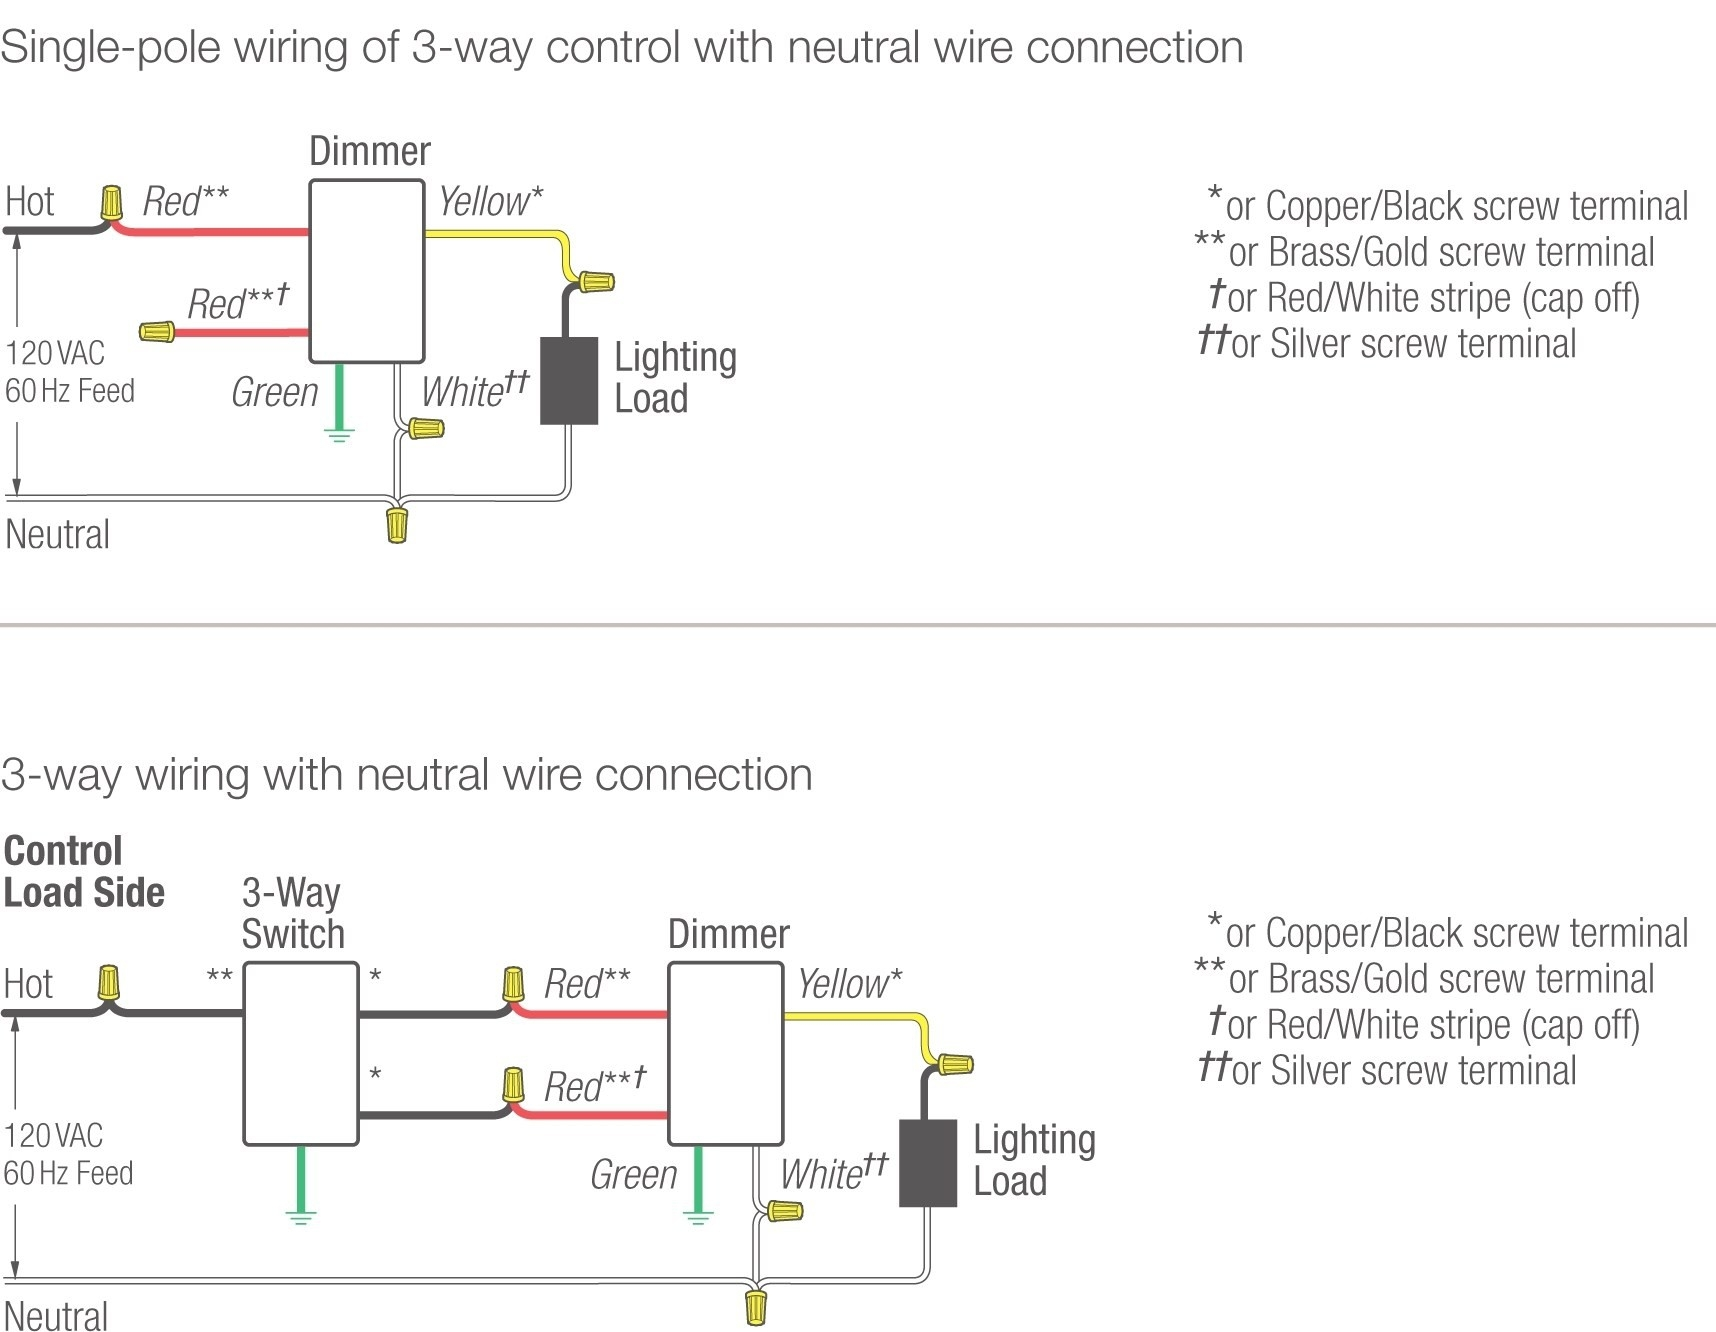 lutron 3 way dimmer wiring diagram Download-Ge Z Wave 3 Way Switch Wiring Diagram Elegant Lutron 3 Way Dimmer Valid Wiring 17-n